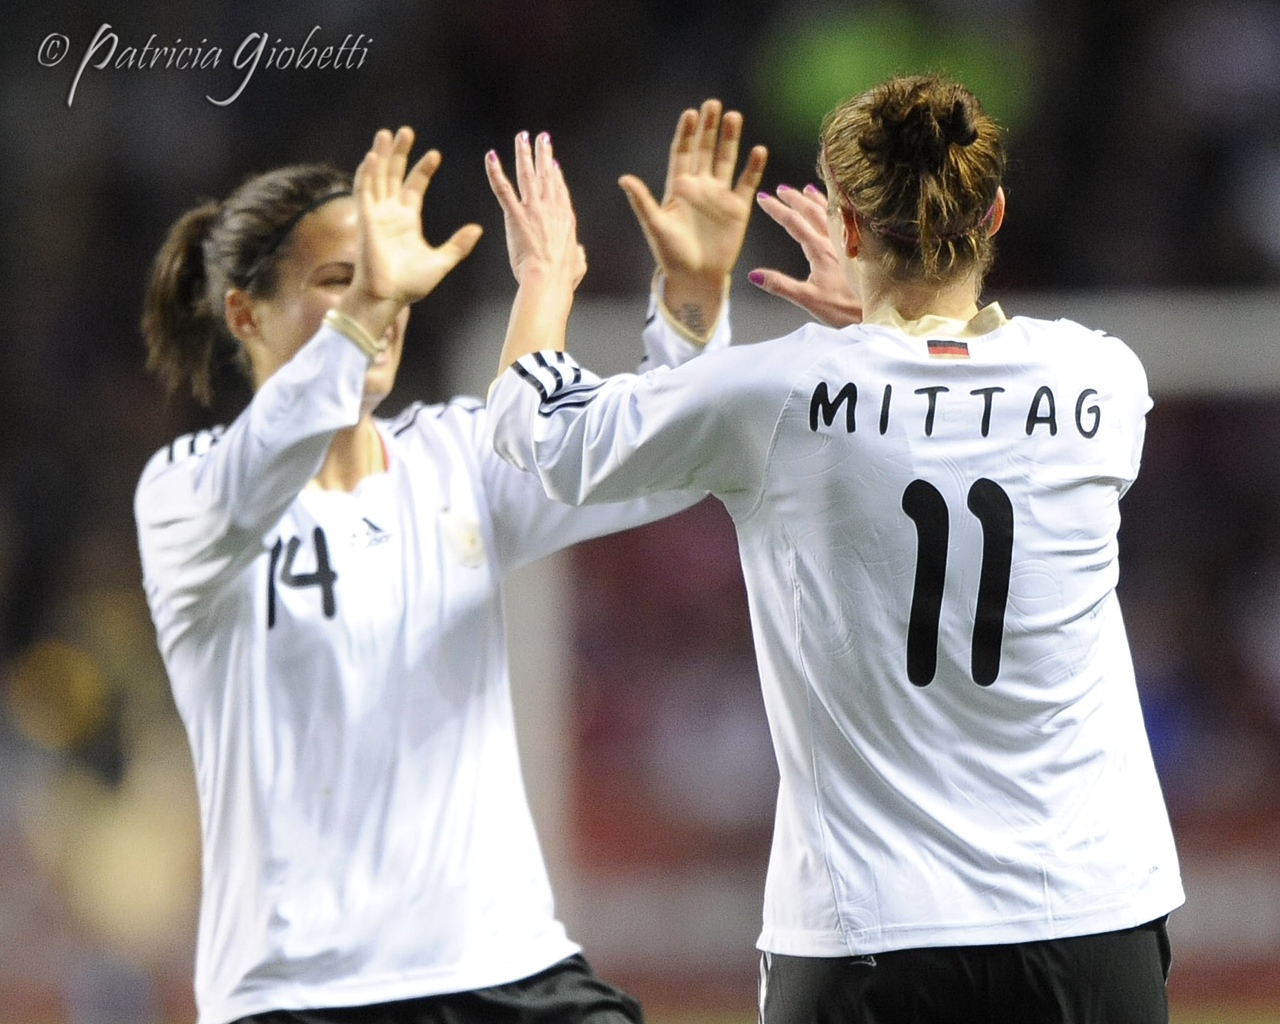 Dzsenifer Marozsan (left) and Anja Mittag celebrate Mittag's goal